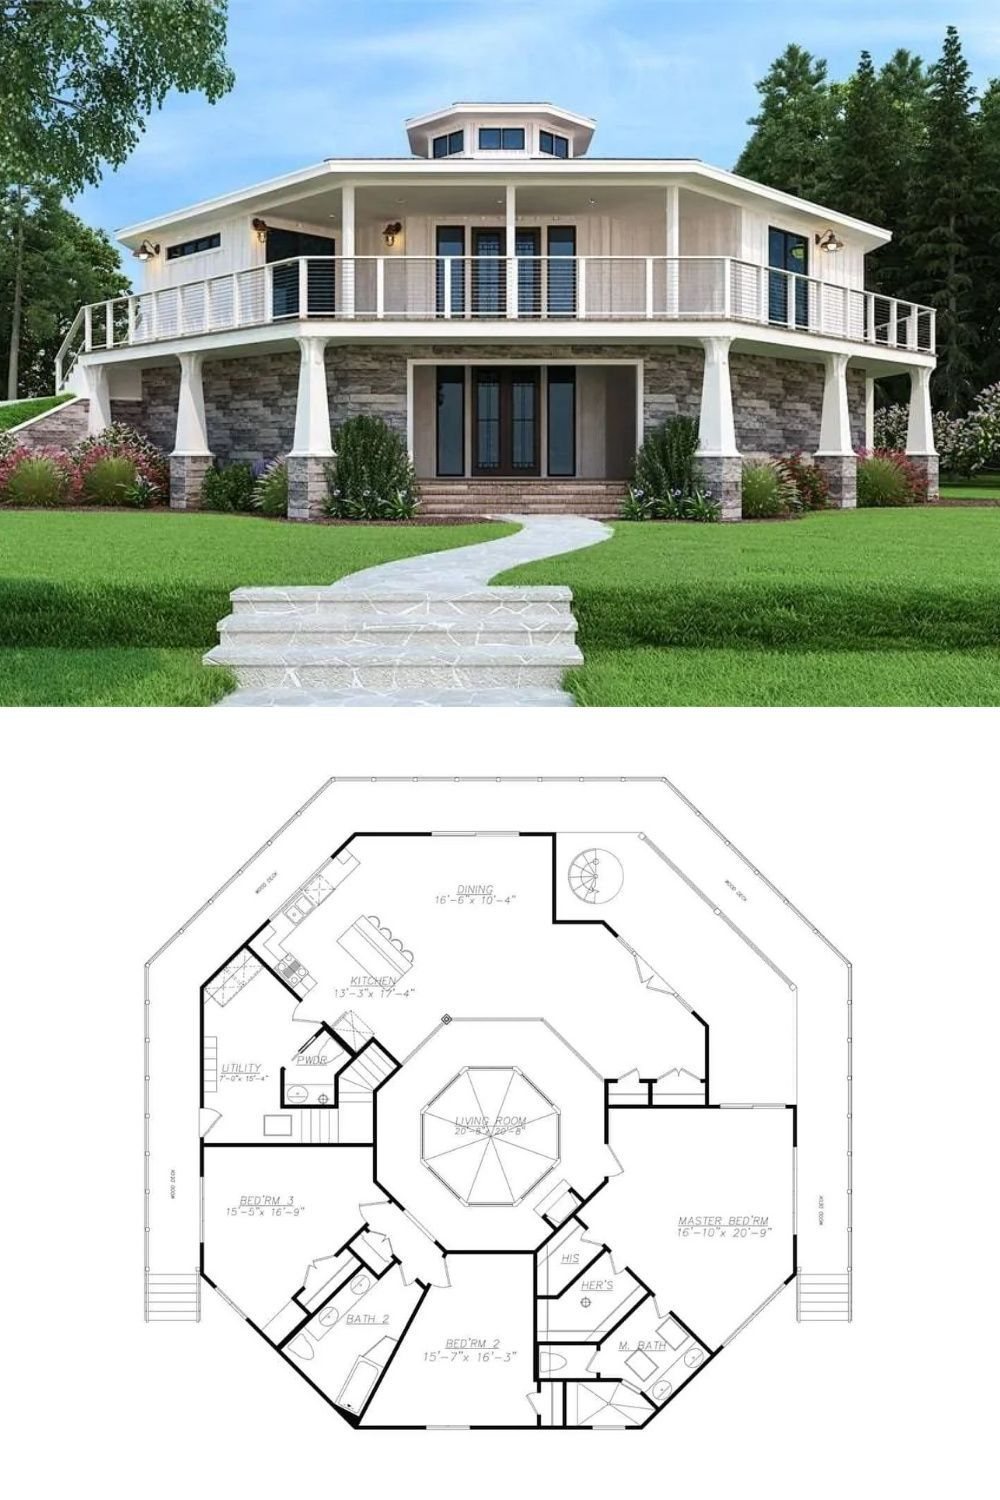 2 Story Modern Octagon House Plan with Wraparound Deck and Octagon House Interior